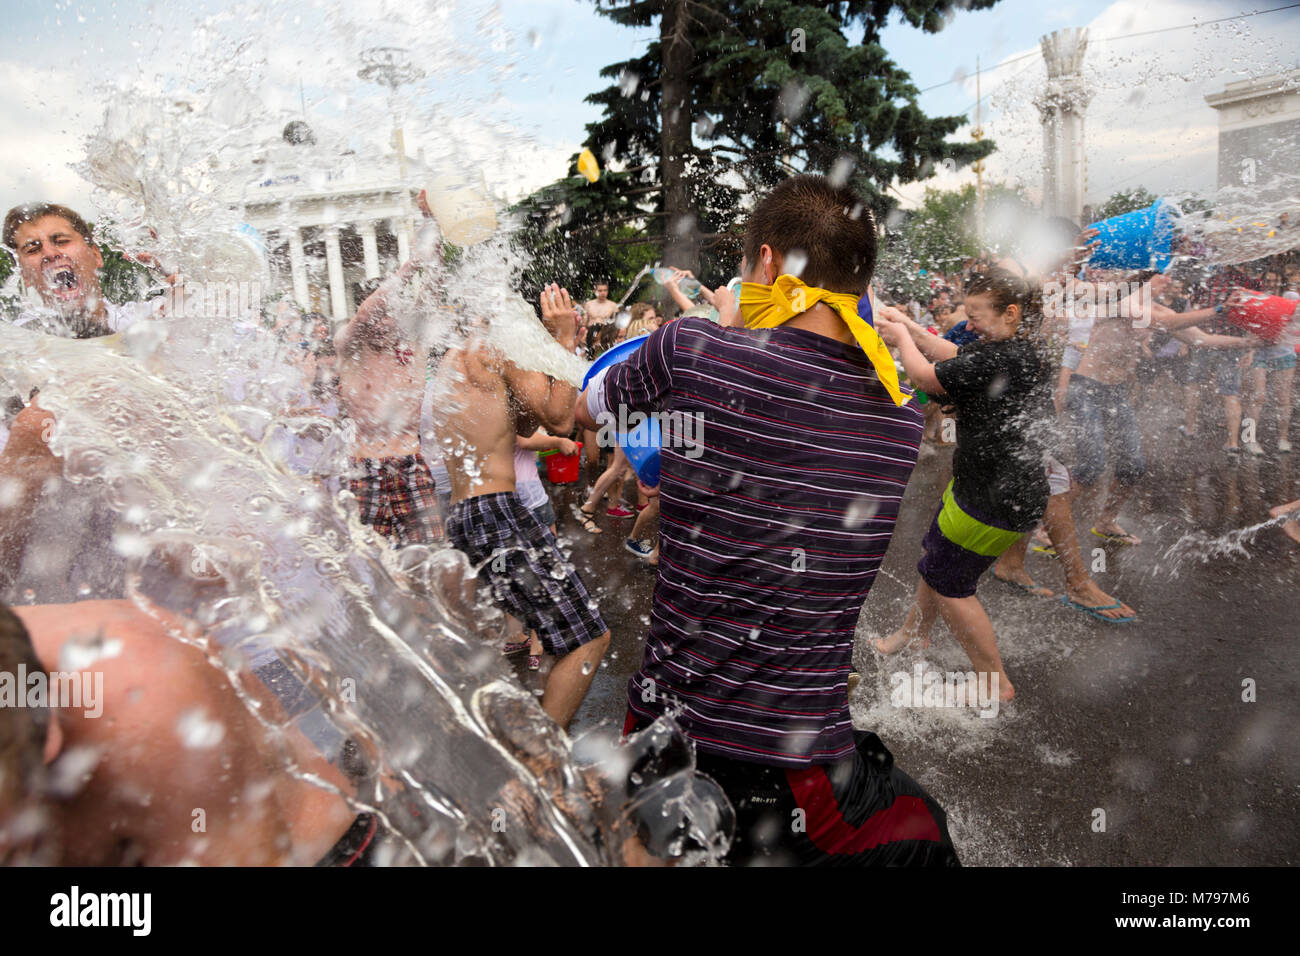 View of the Friendship of Nations Fountain during the 'Water Battle' at the All-Russian Exhibition Center - Stock Image